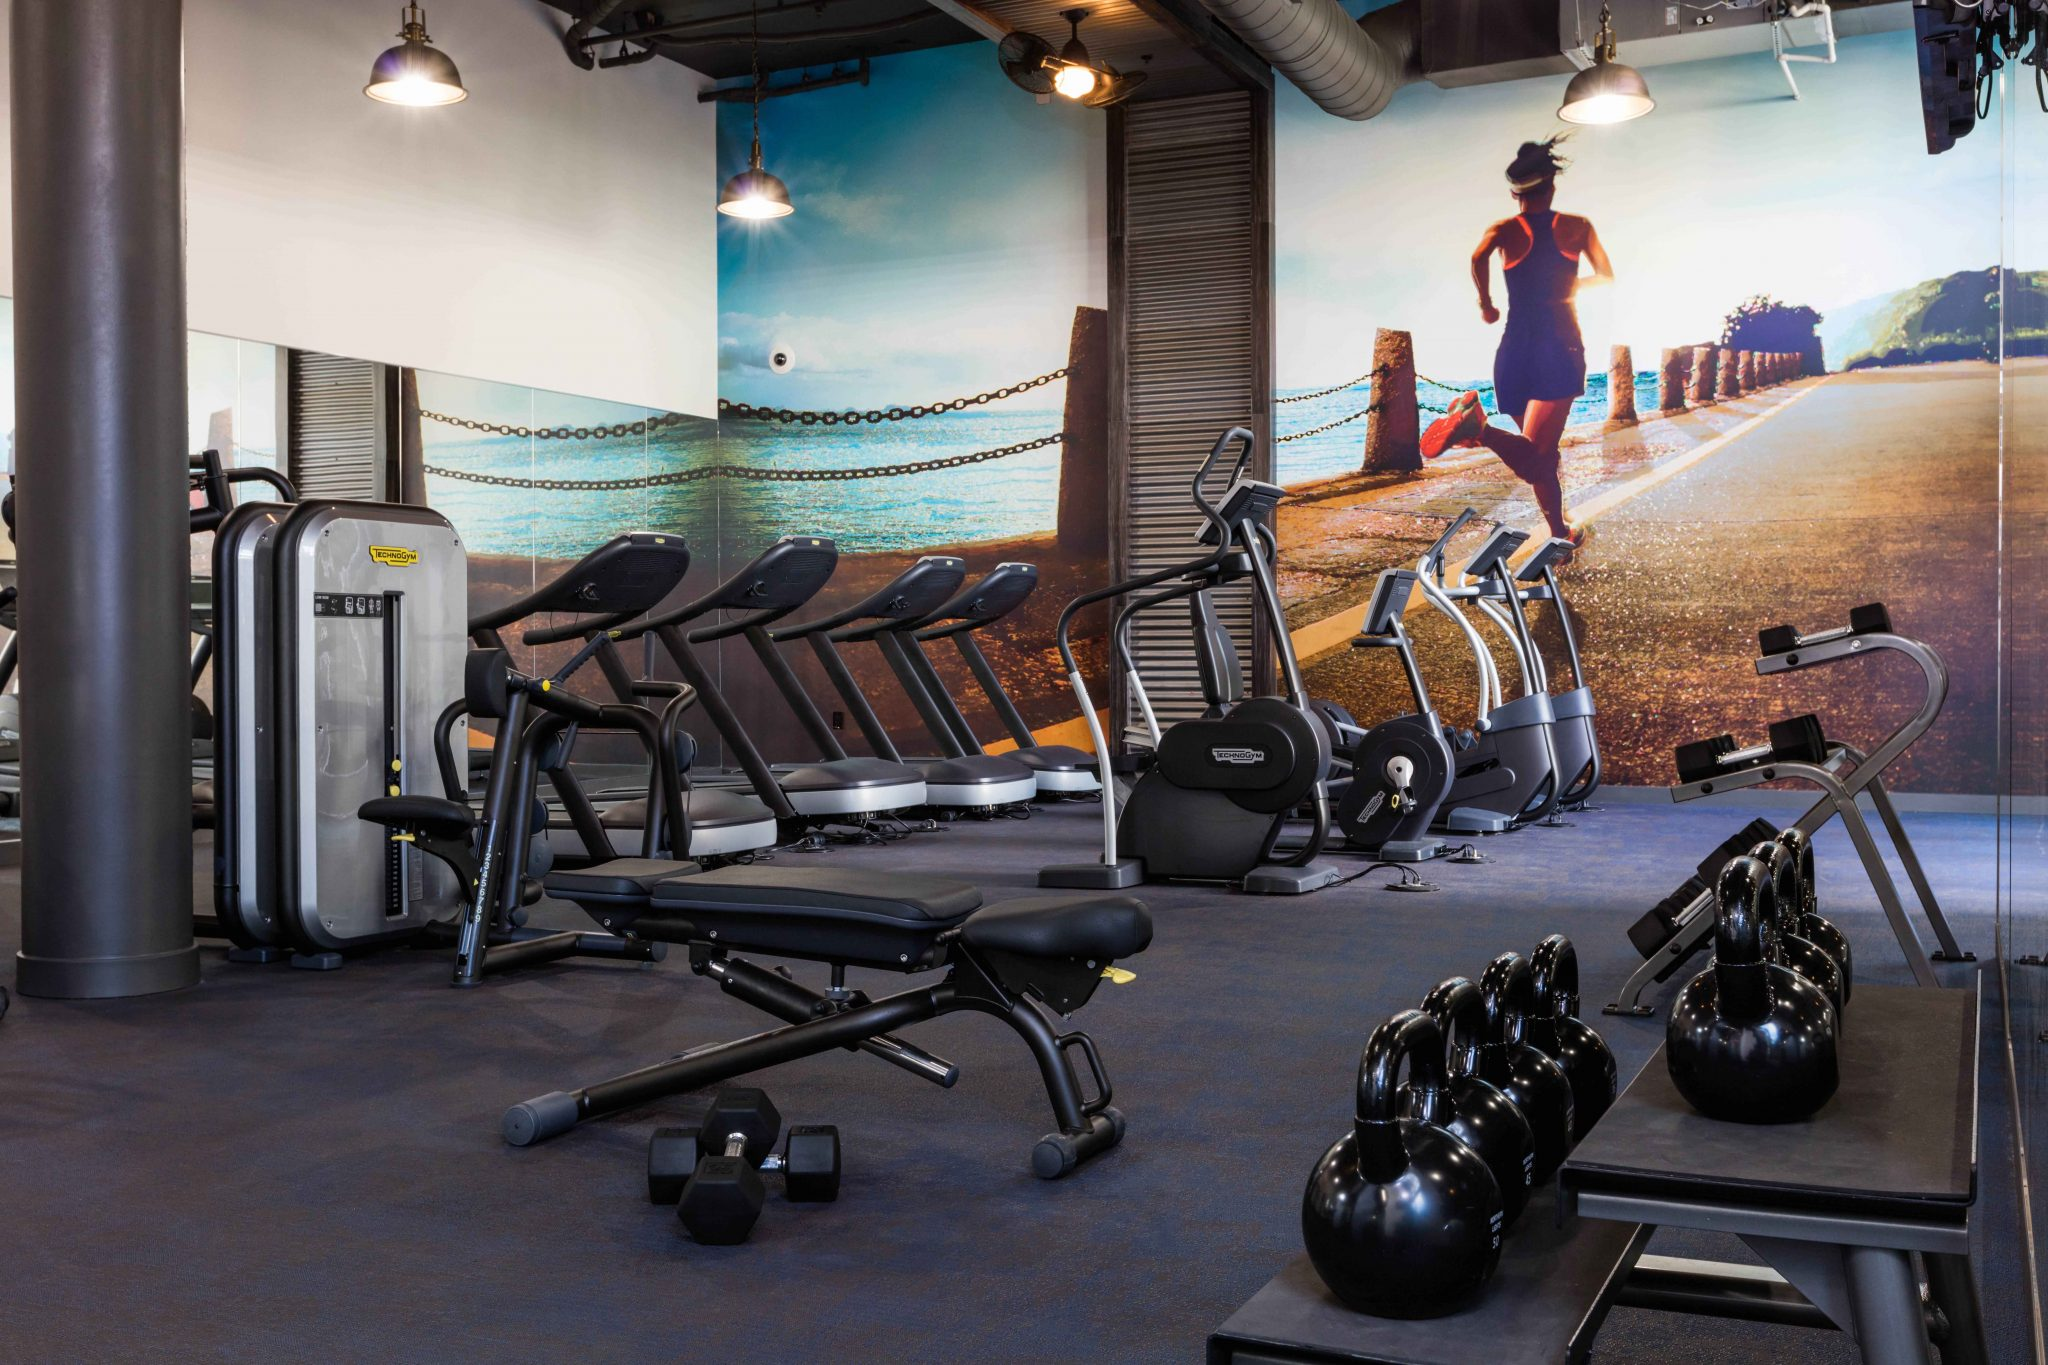 Interior of fitness center with kettle bell weights and exercise machines